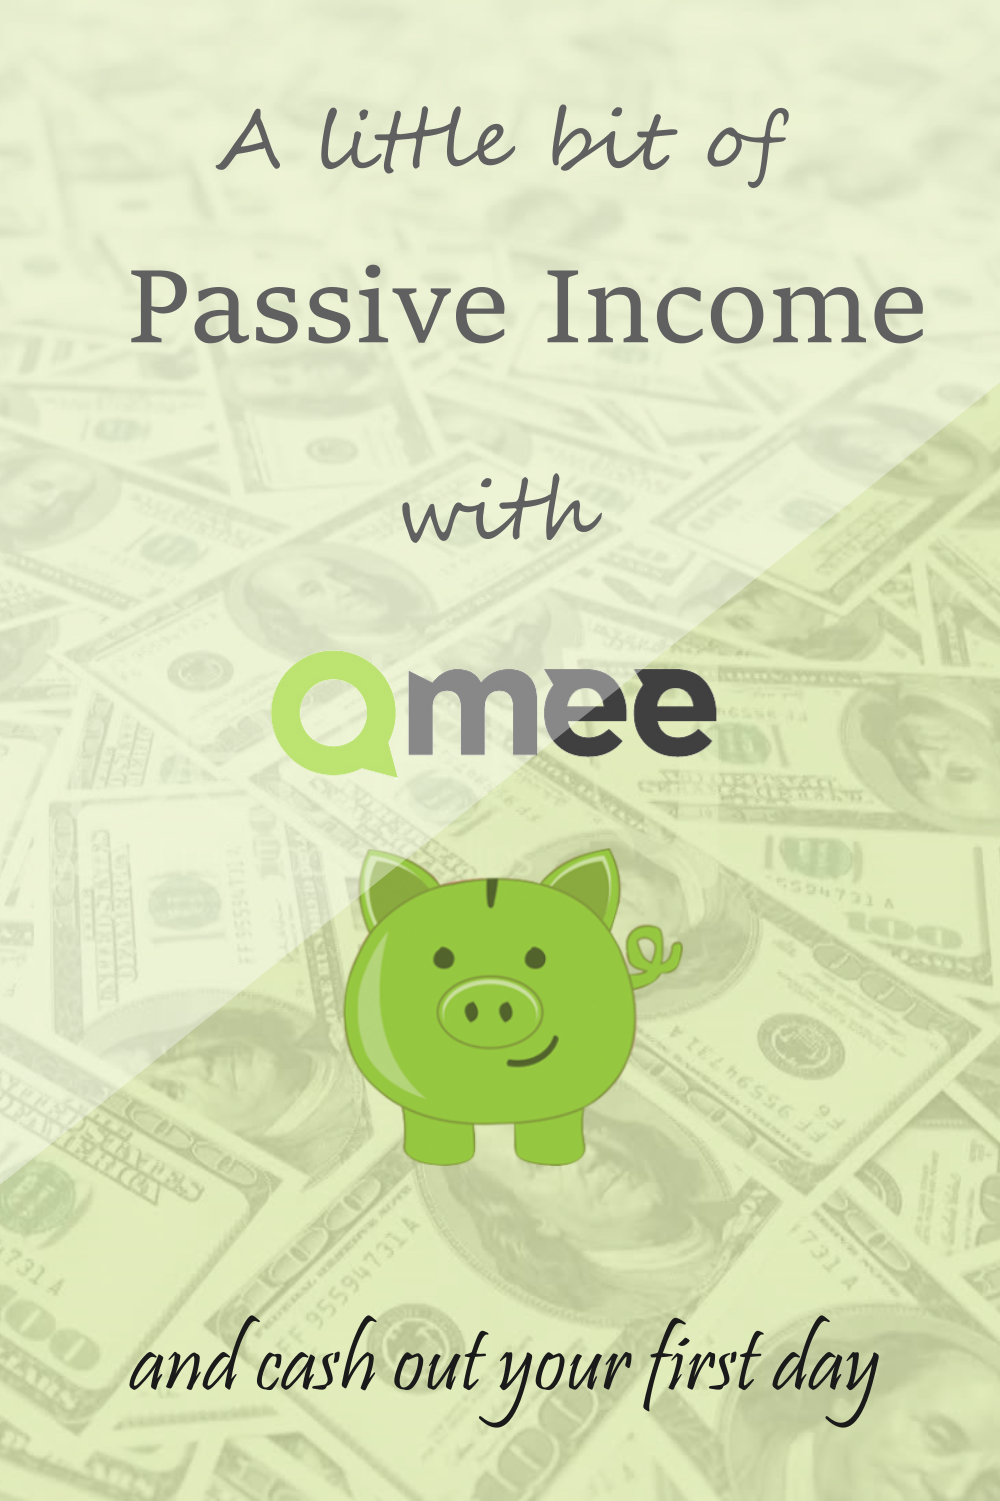 A little bit of Passive Income with Qmee